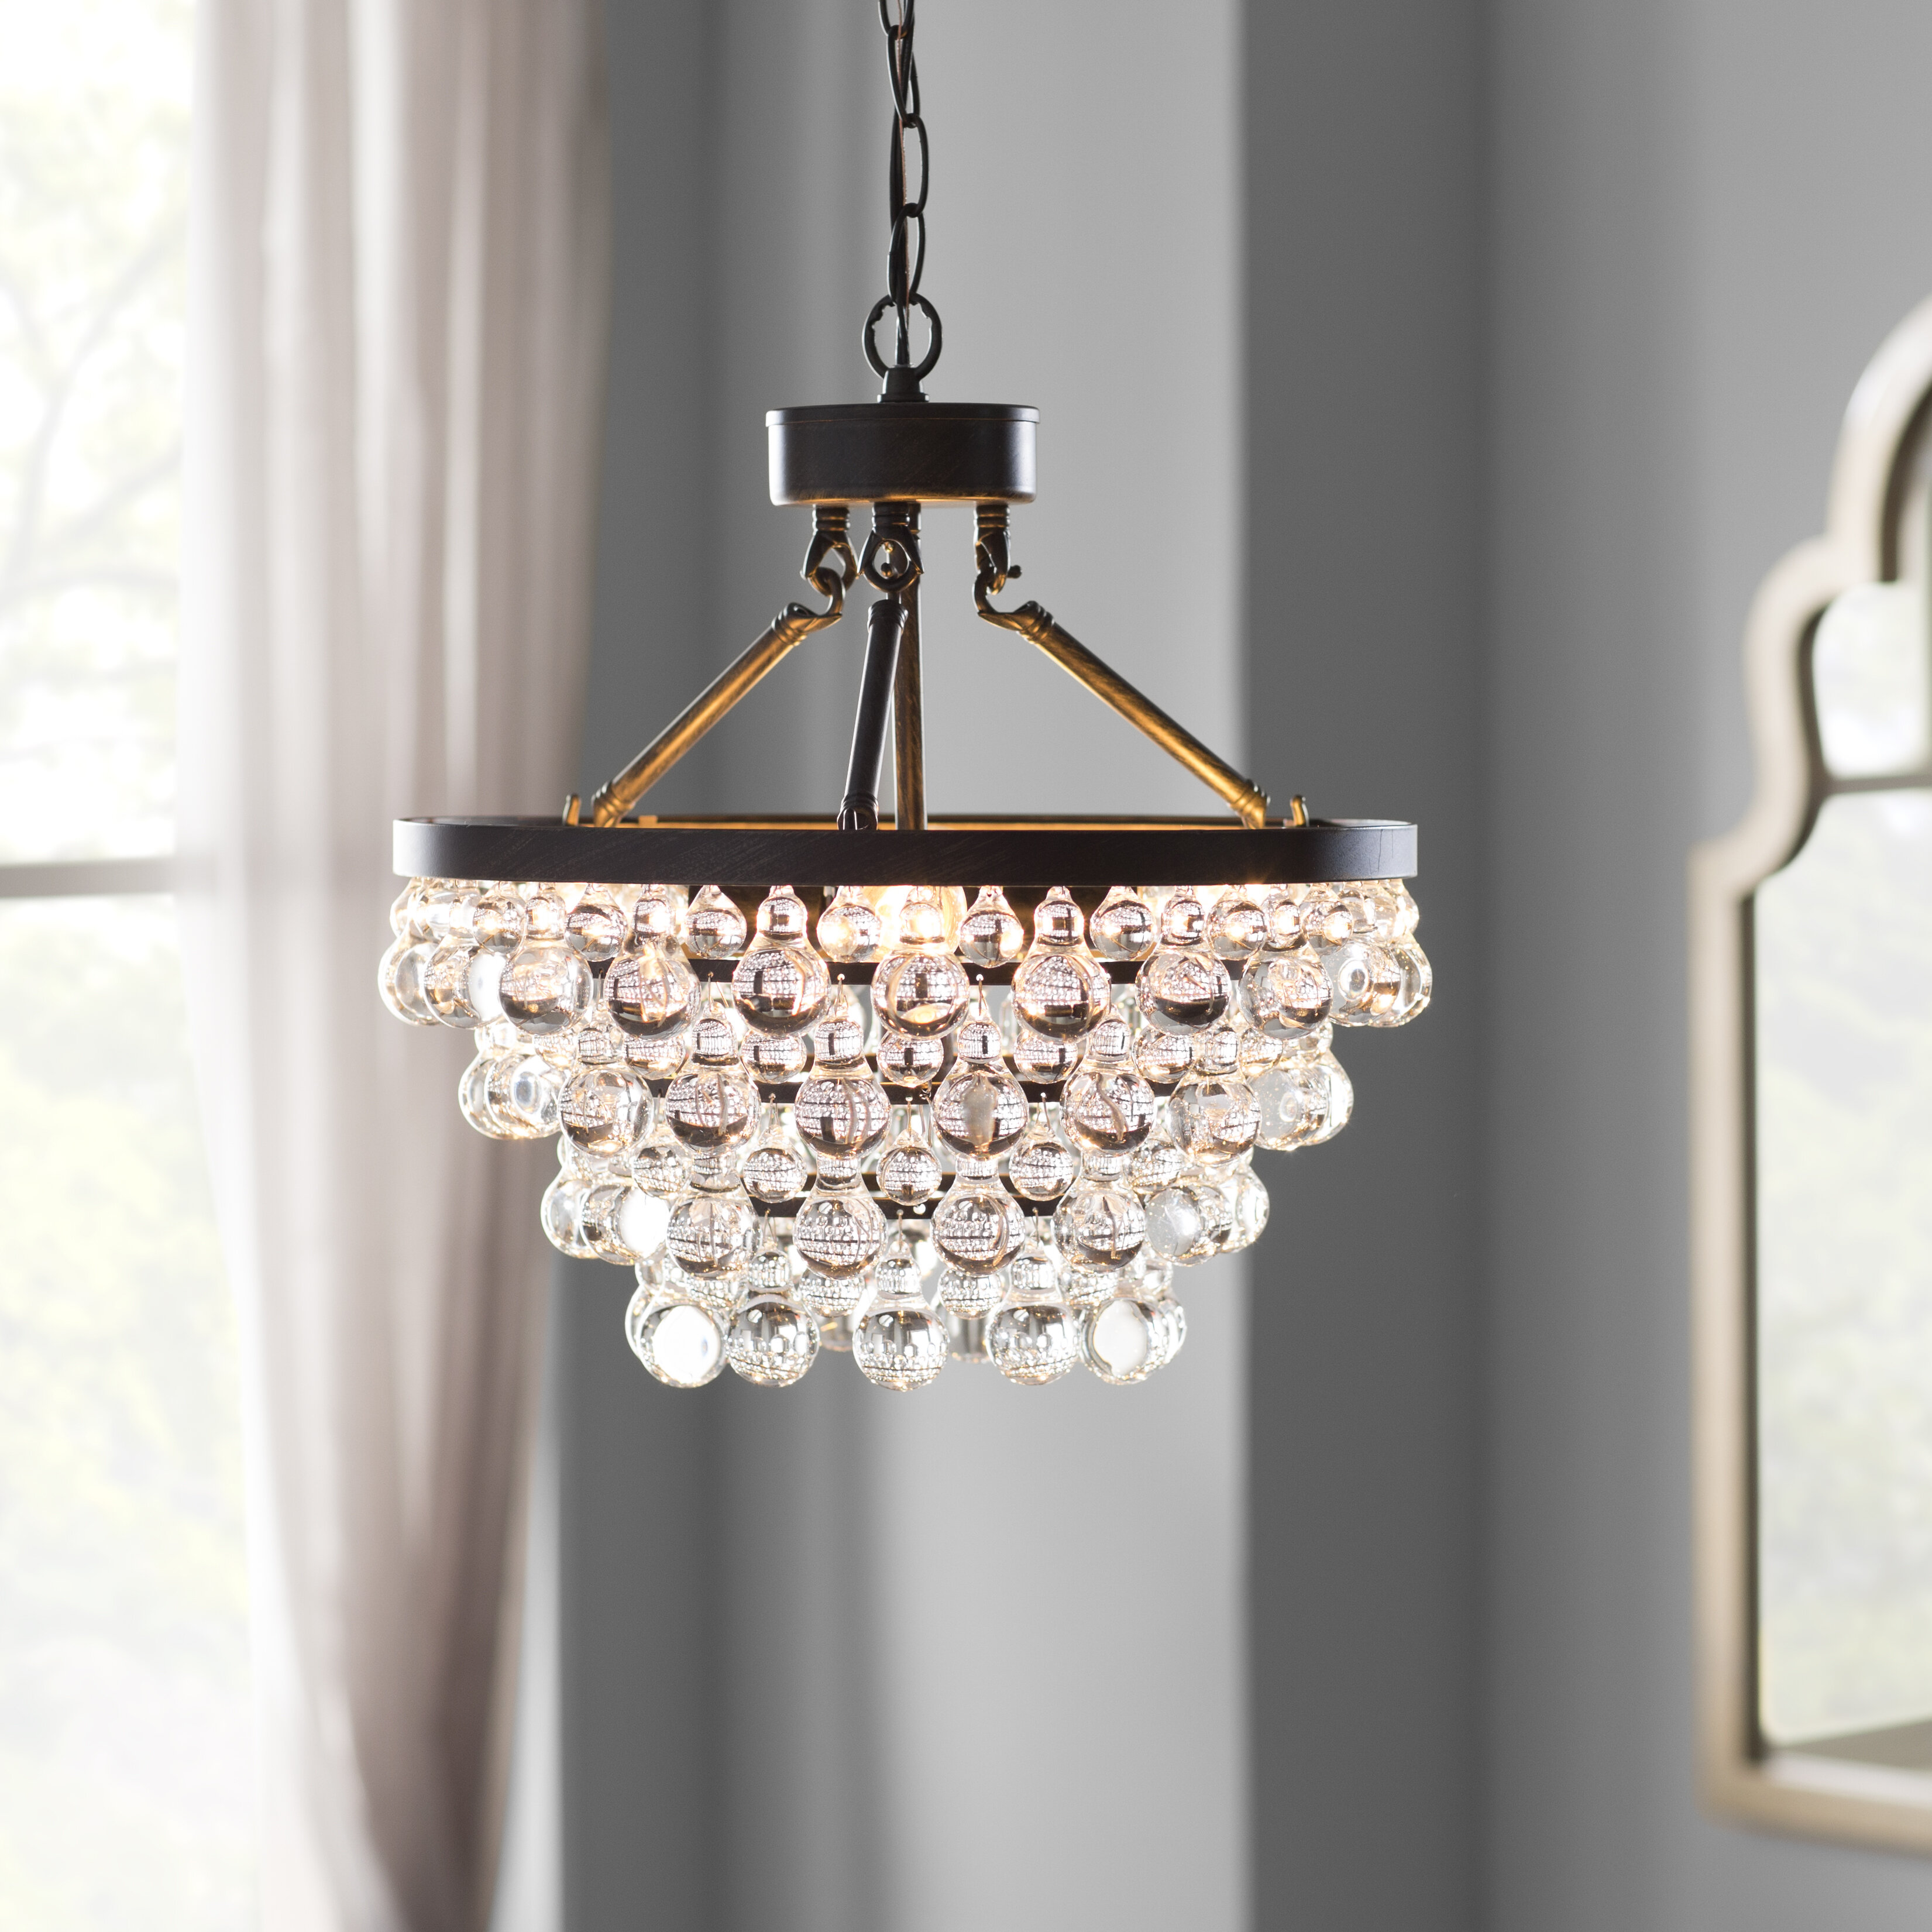 House of hampton mcmillen 5 light crystal chandelier reviews wayfair